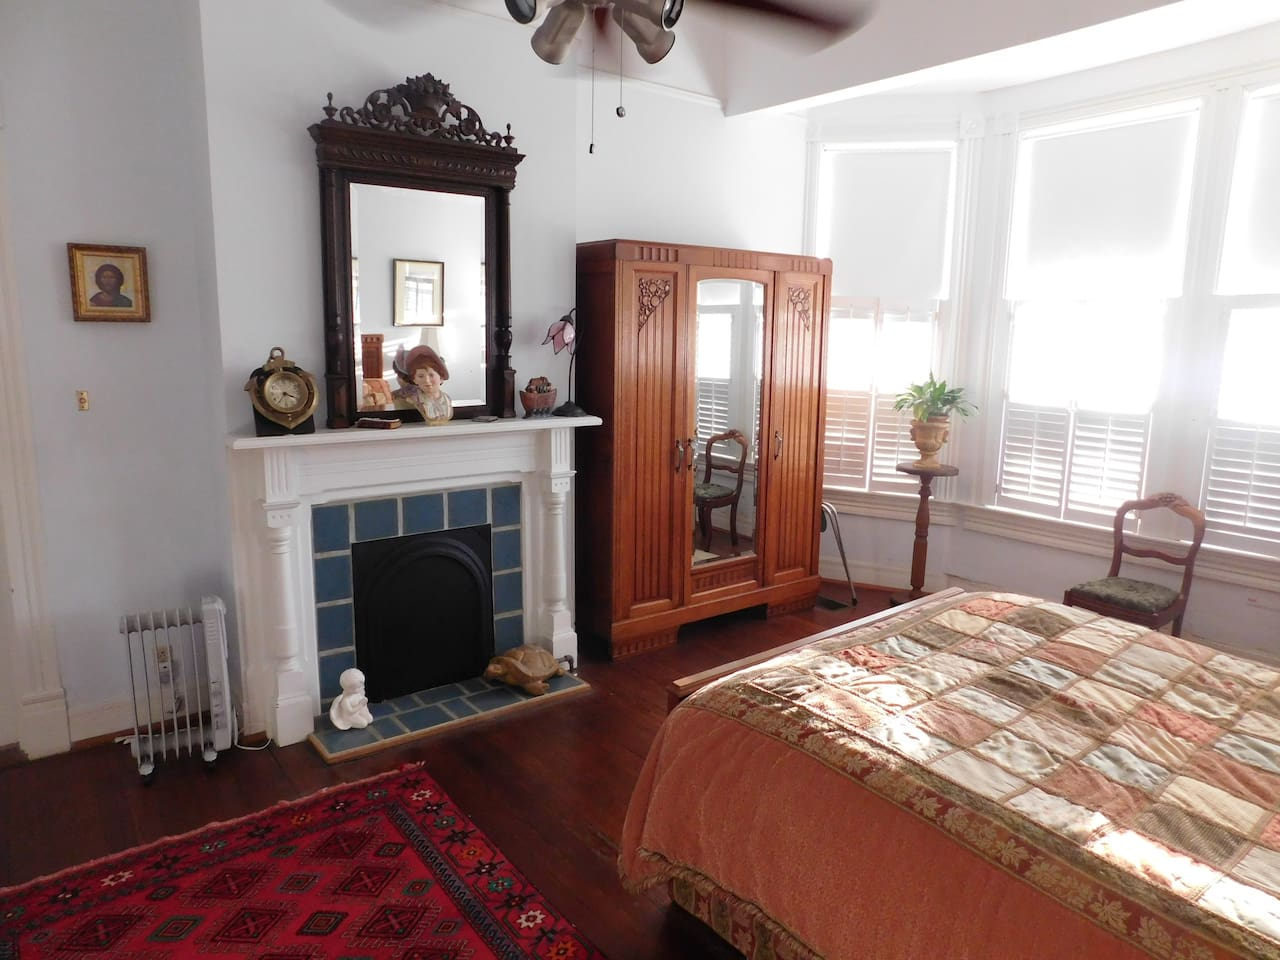 1858 Spanish Bay Deluxe room with queen size bed